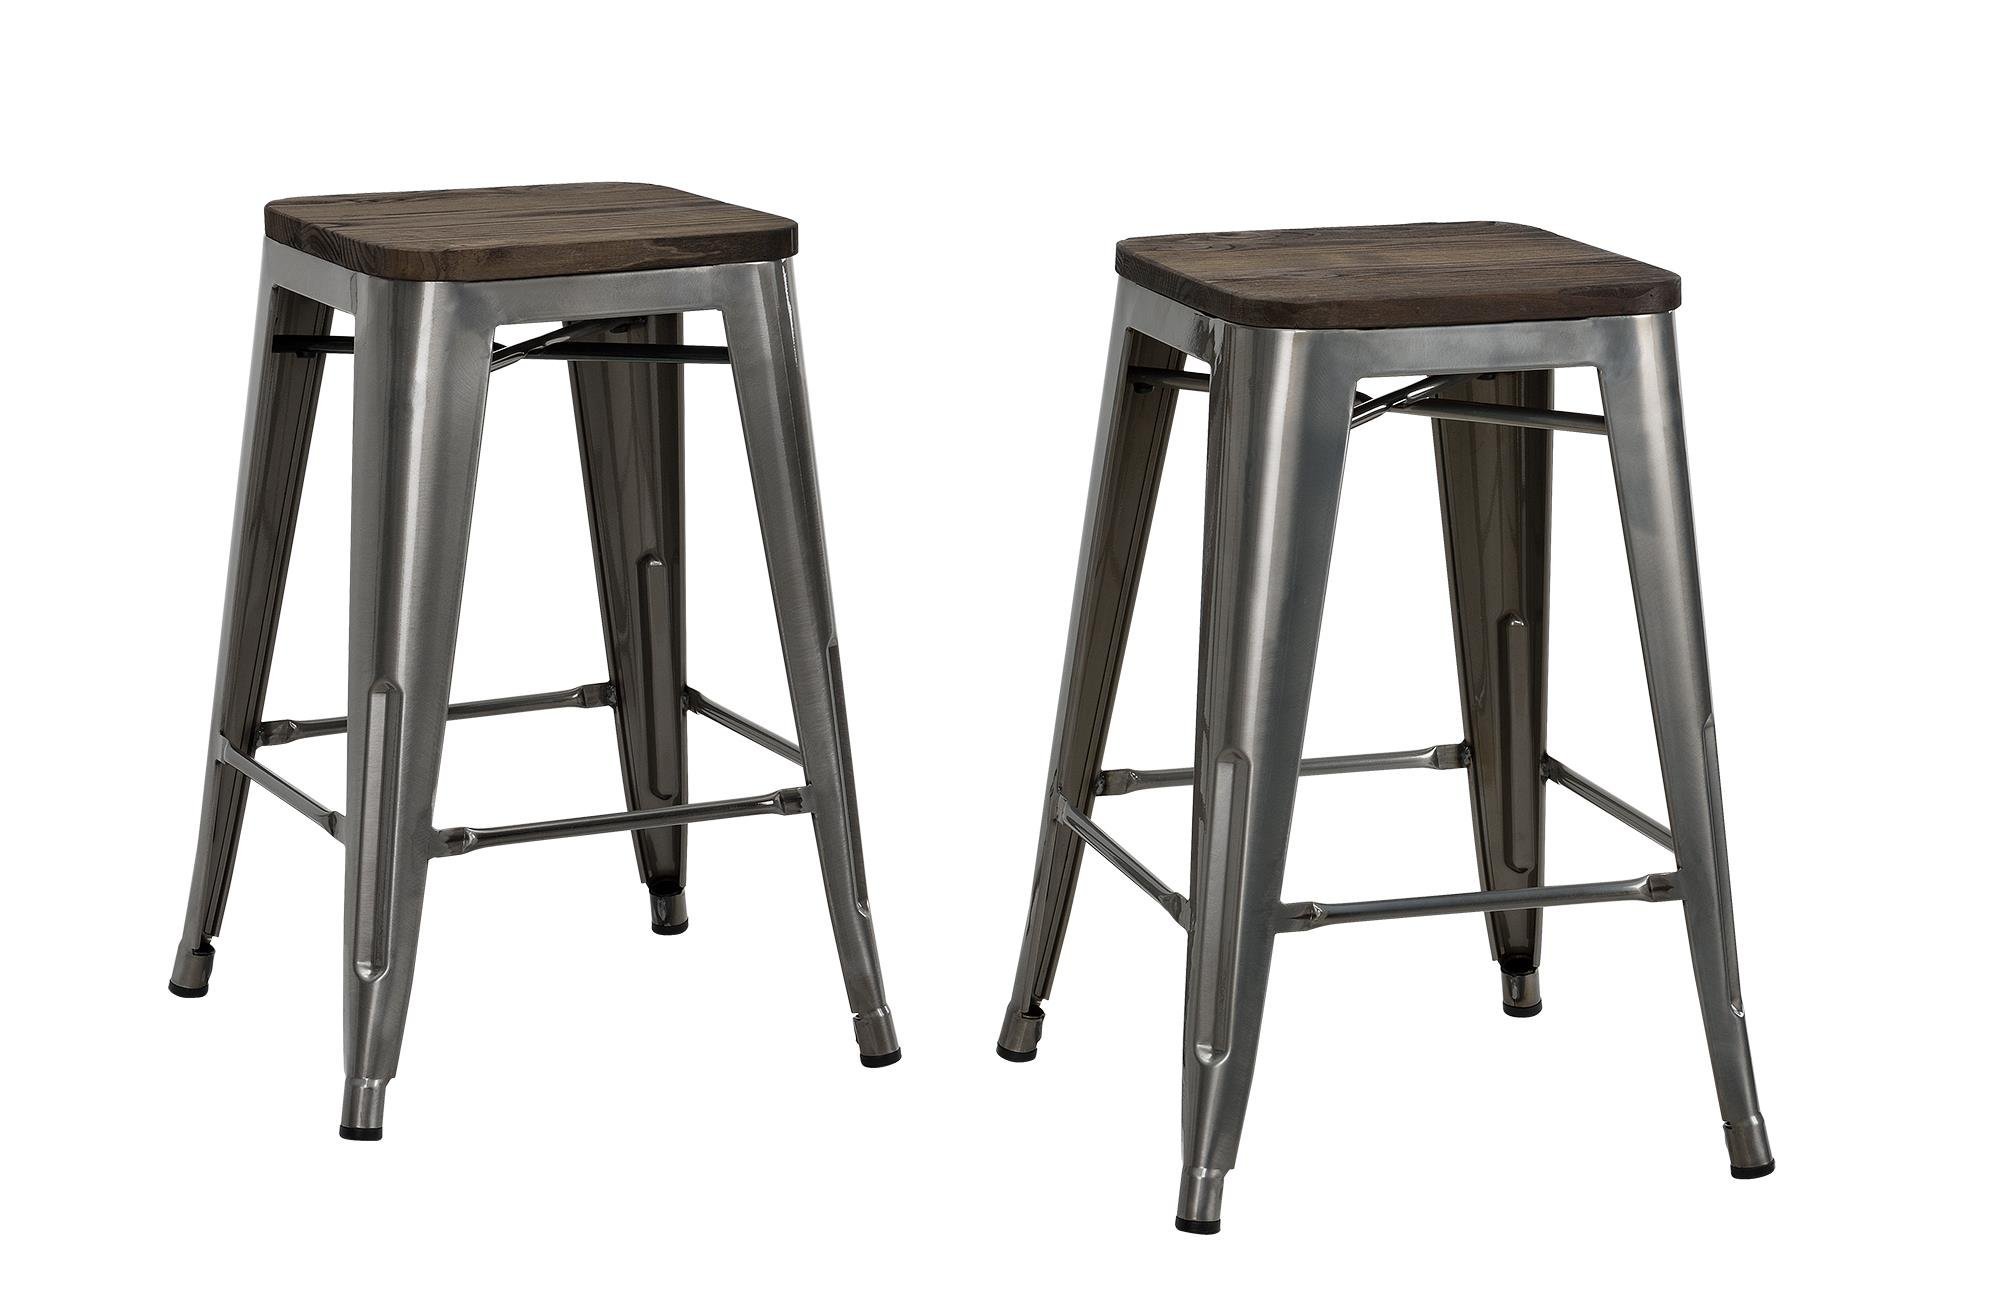 DHP Fusion Metal Backless 24'' Counter Stool with Wood Seat, Distressed Metal Finish for Industrial Appeal, Set of two, Antique Gun Metal by DHP